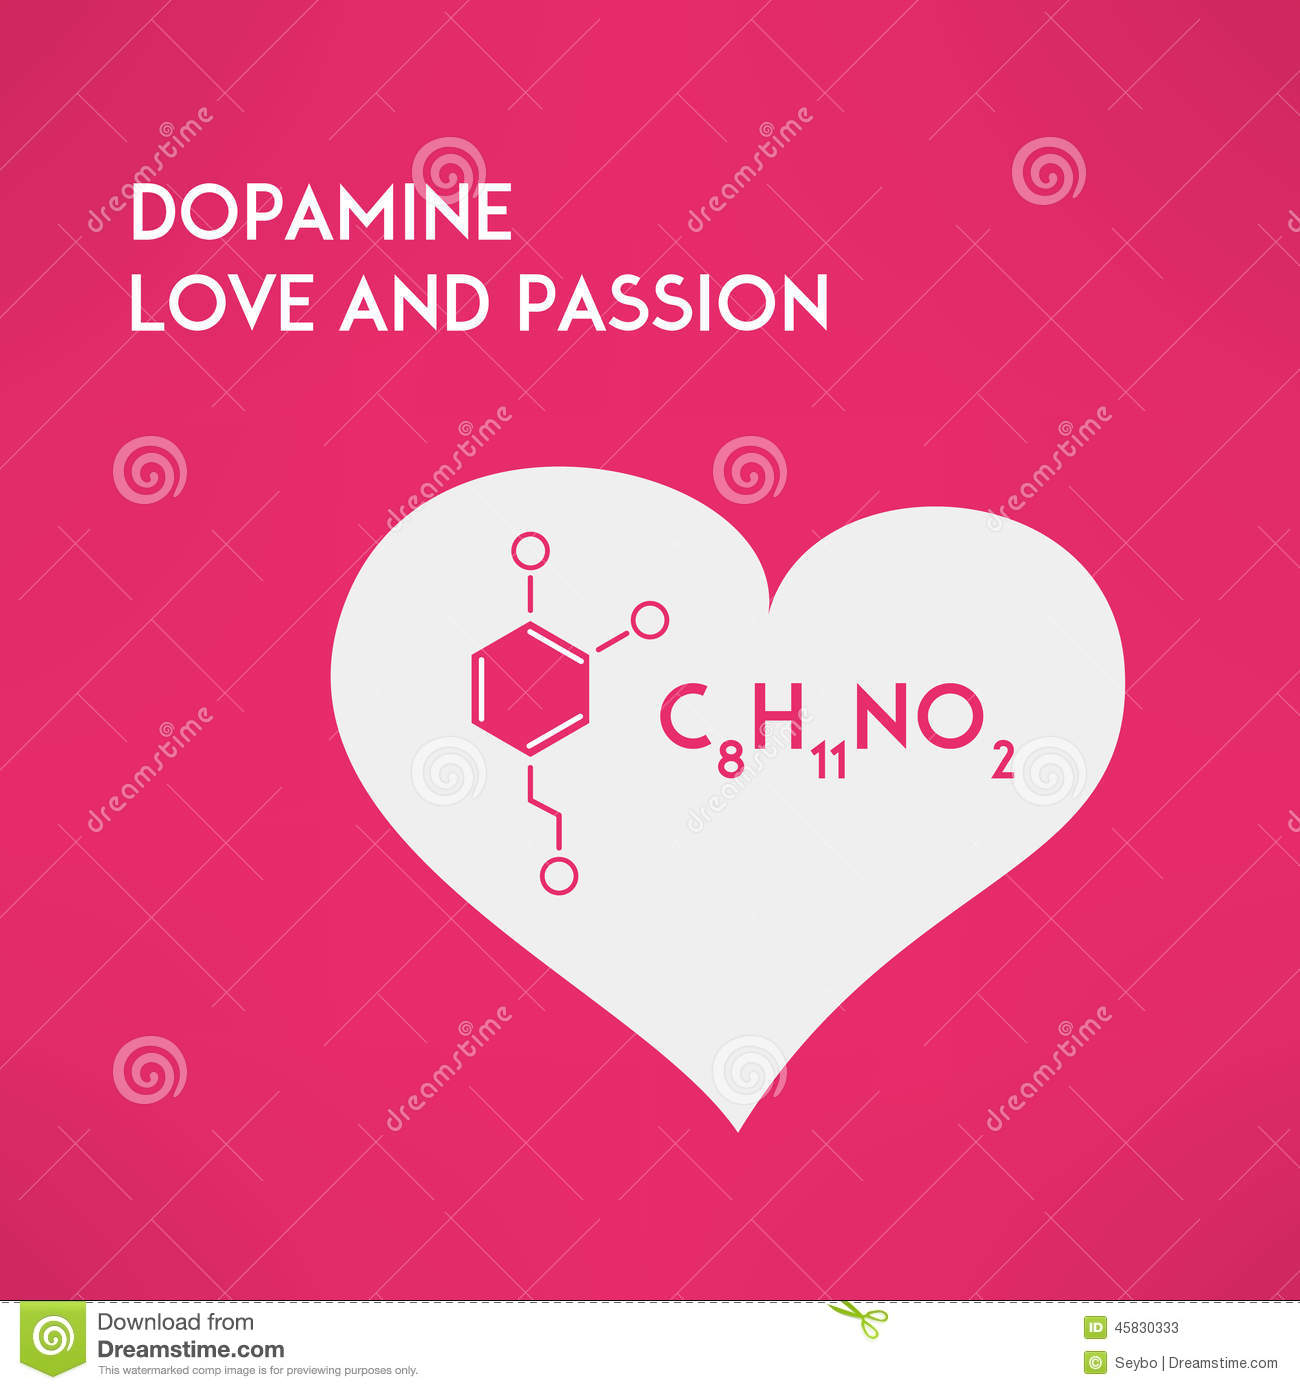 Dopamine Graphic Design